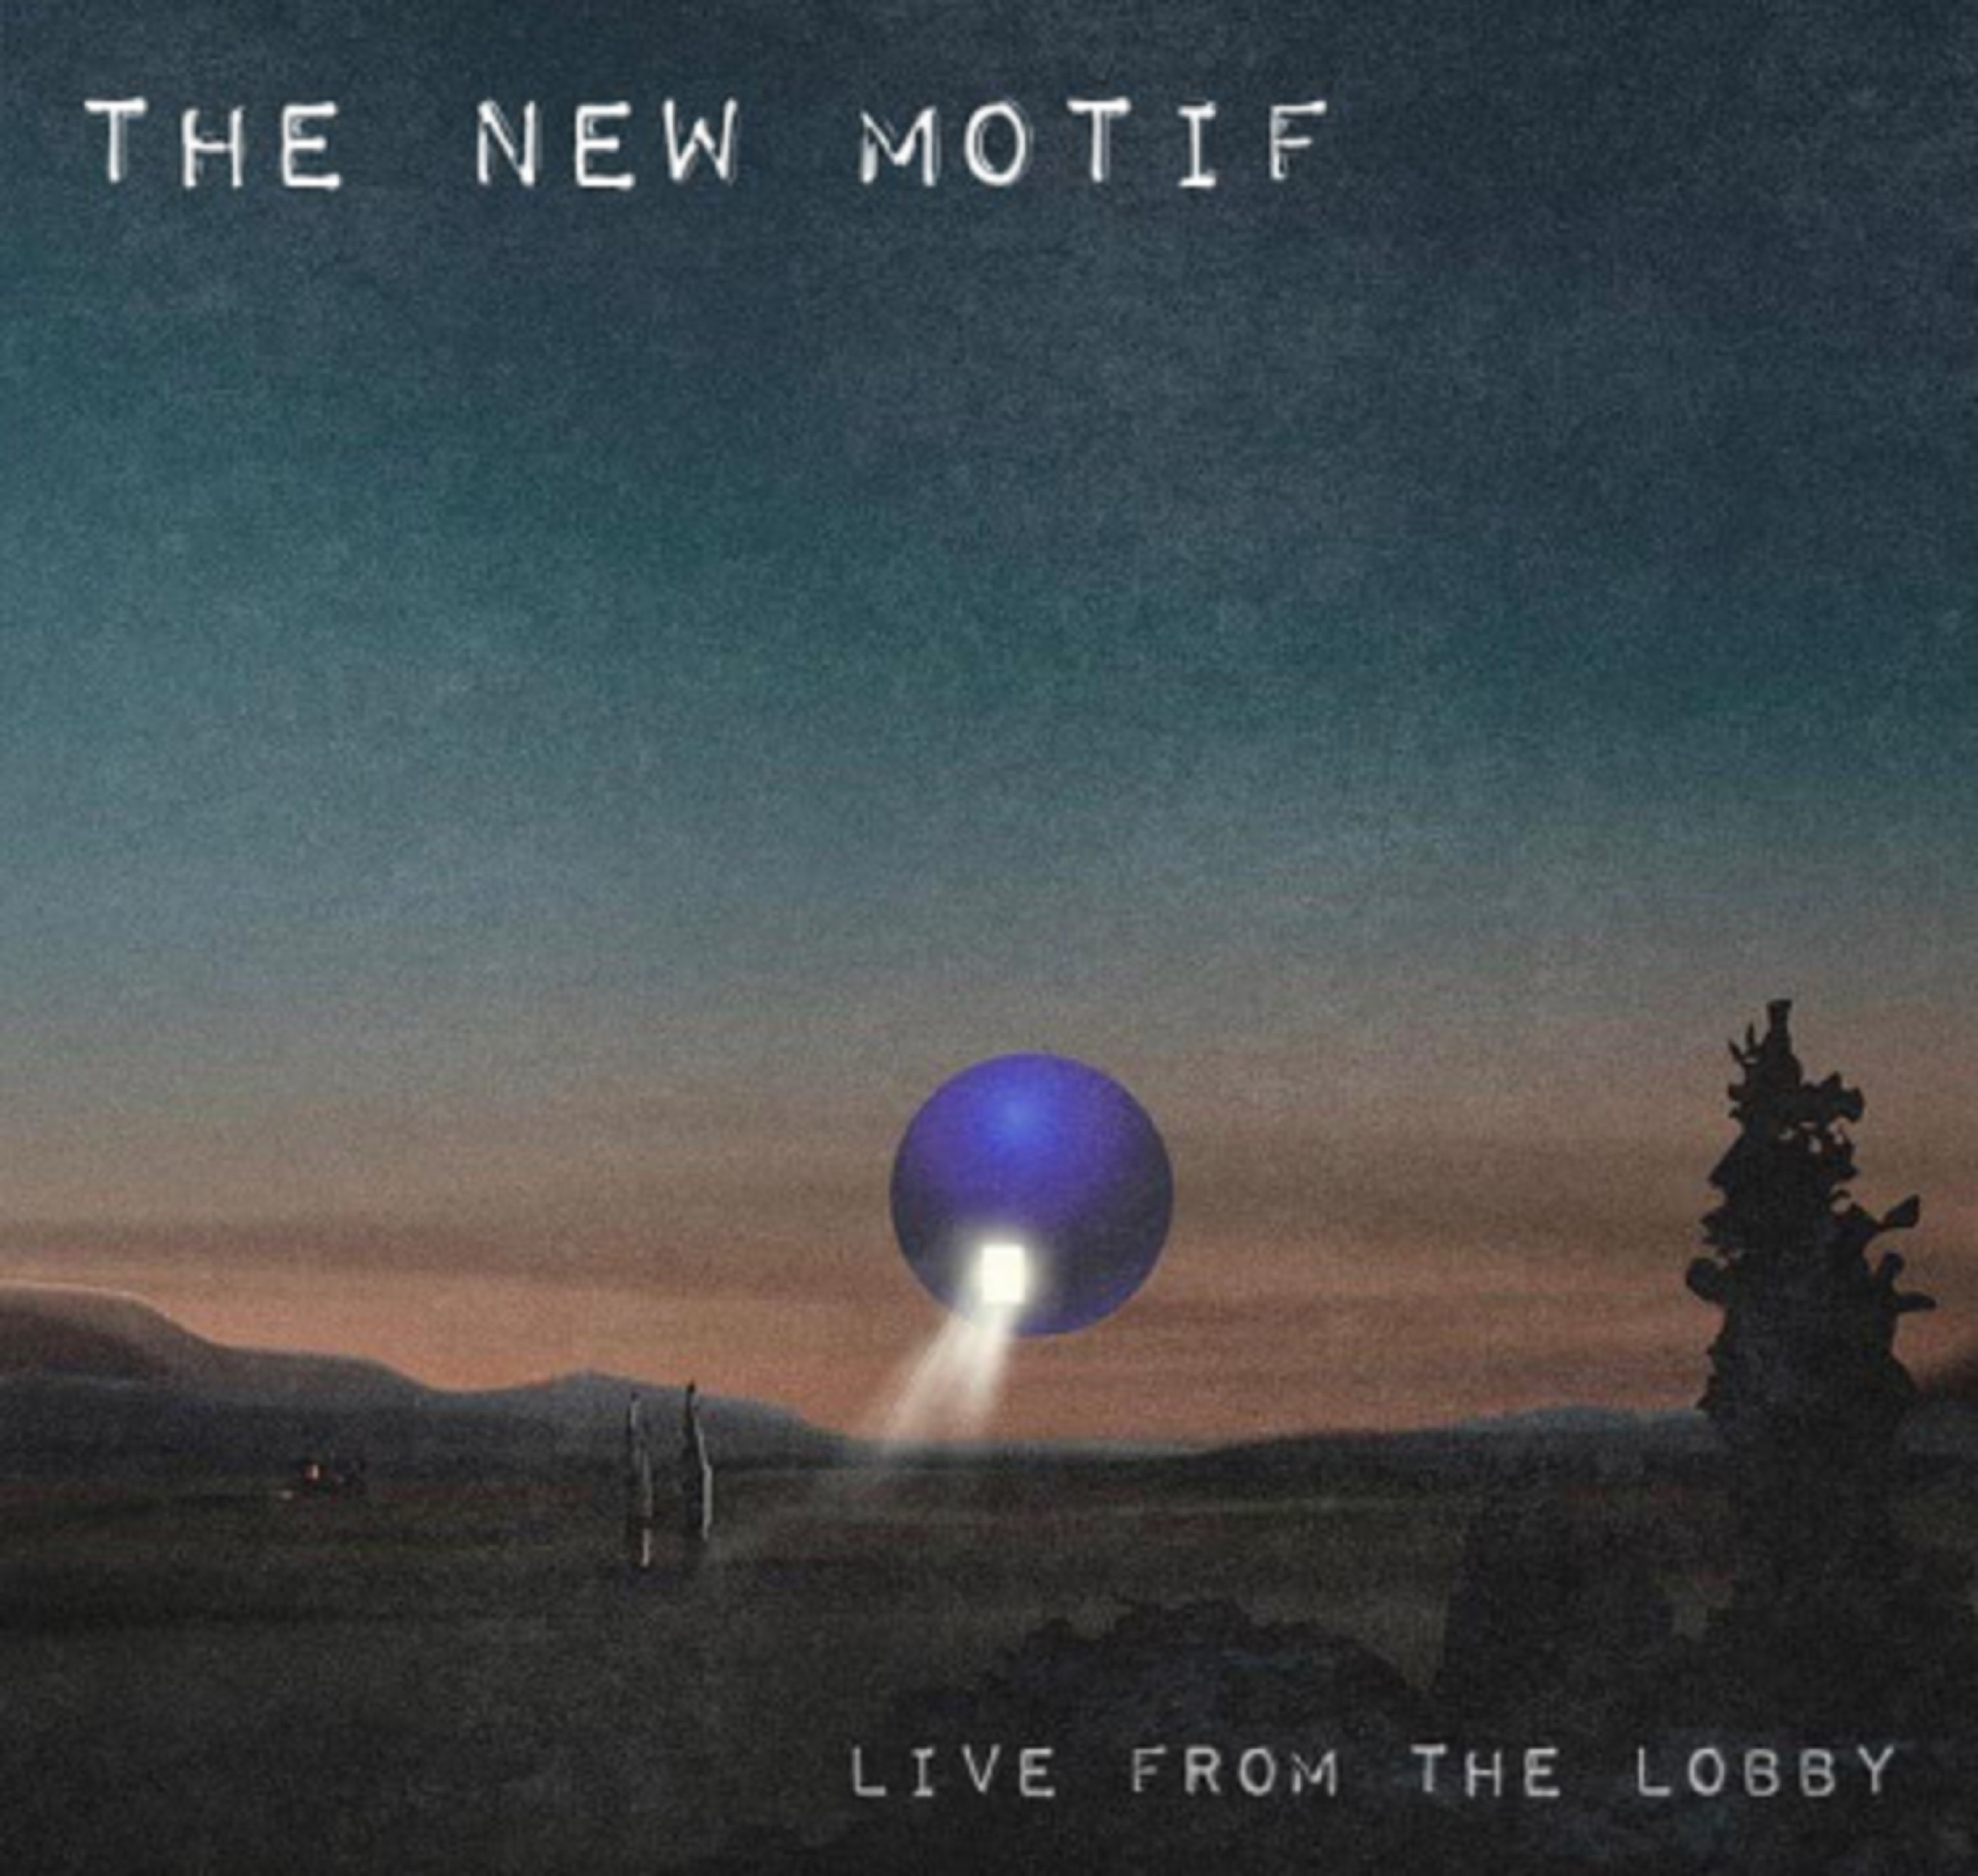 The New Motif Announce Live Album & Spring Outdoor Residency